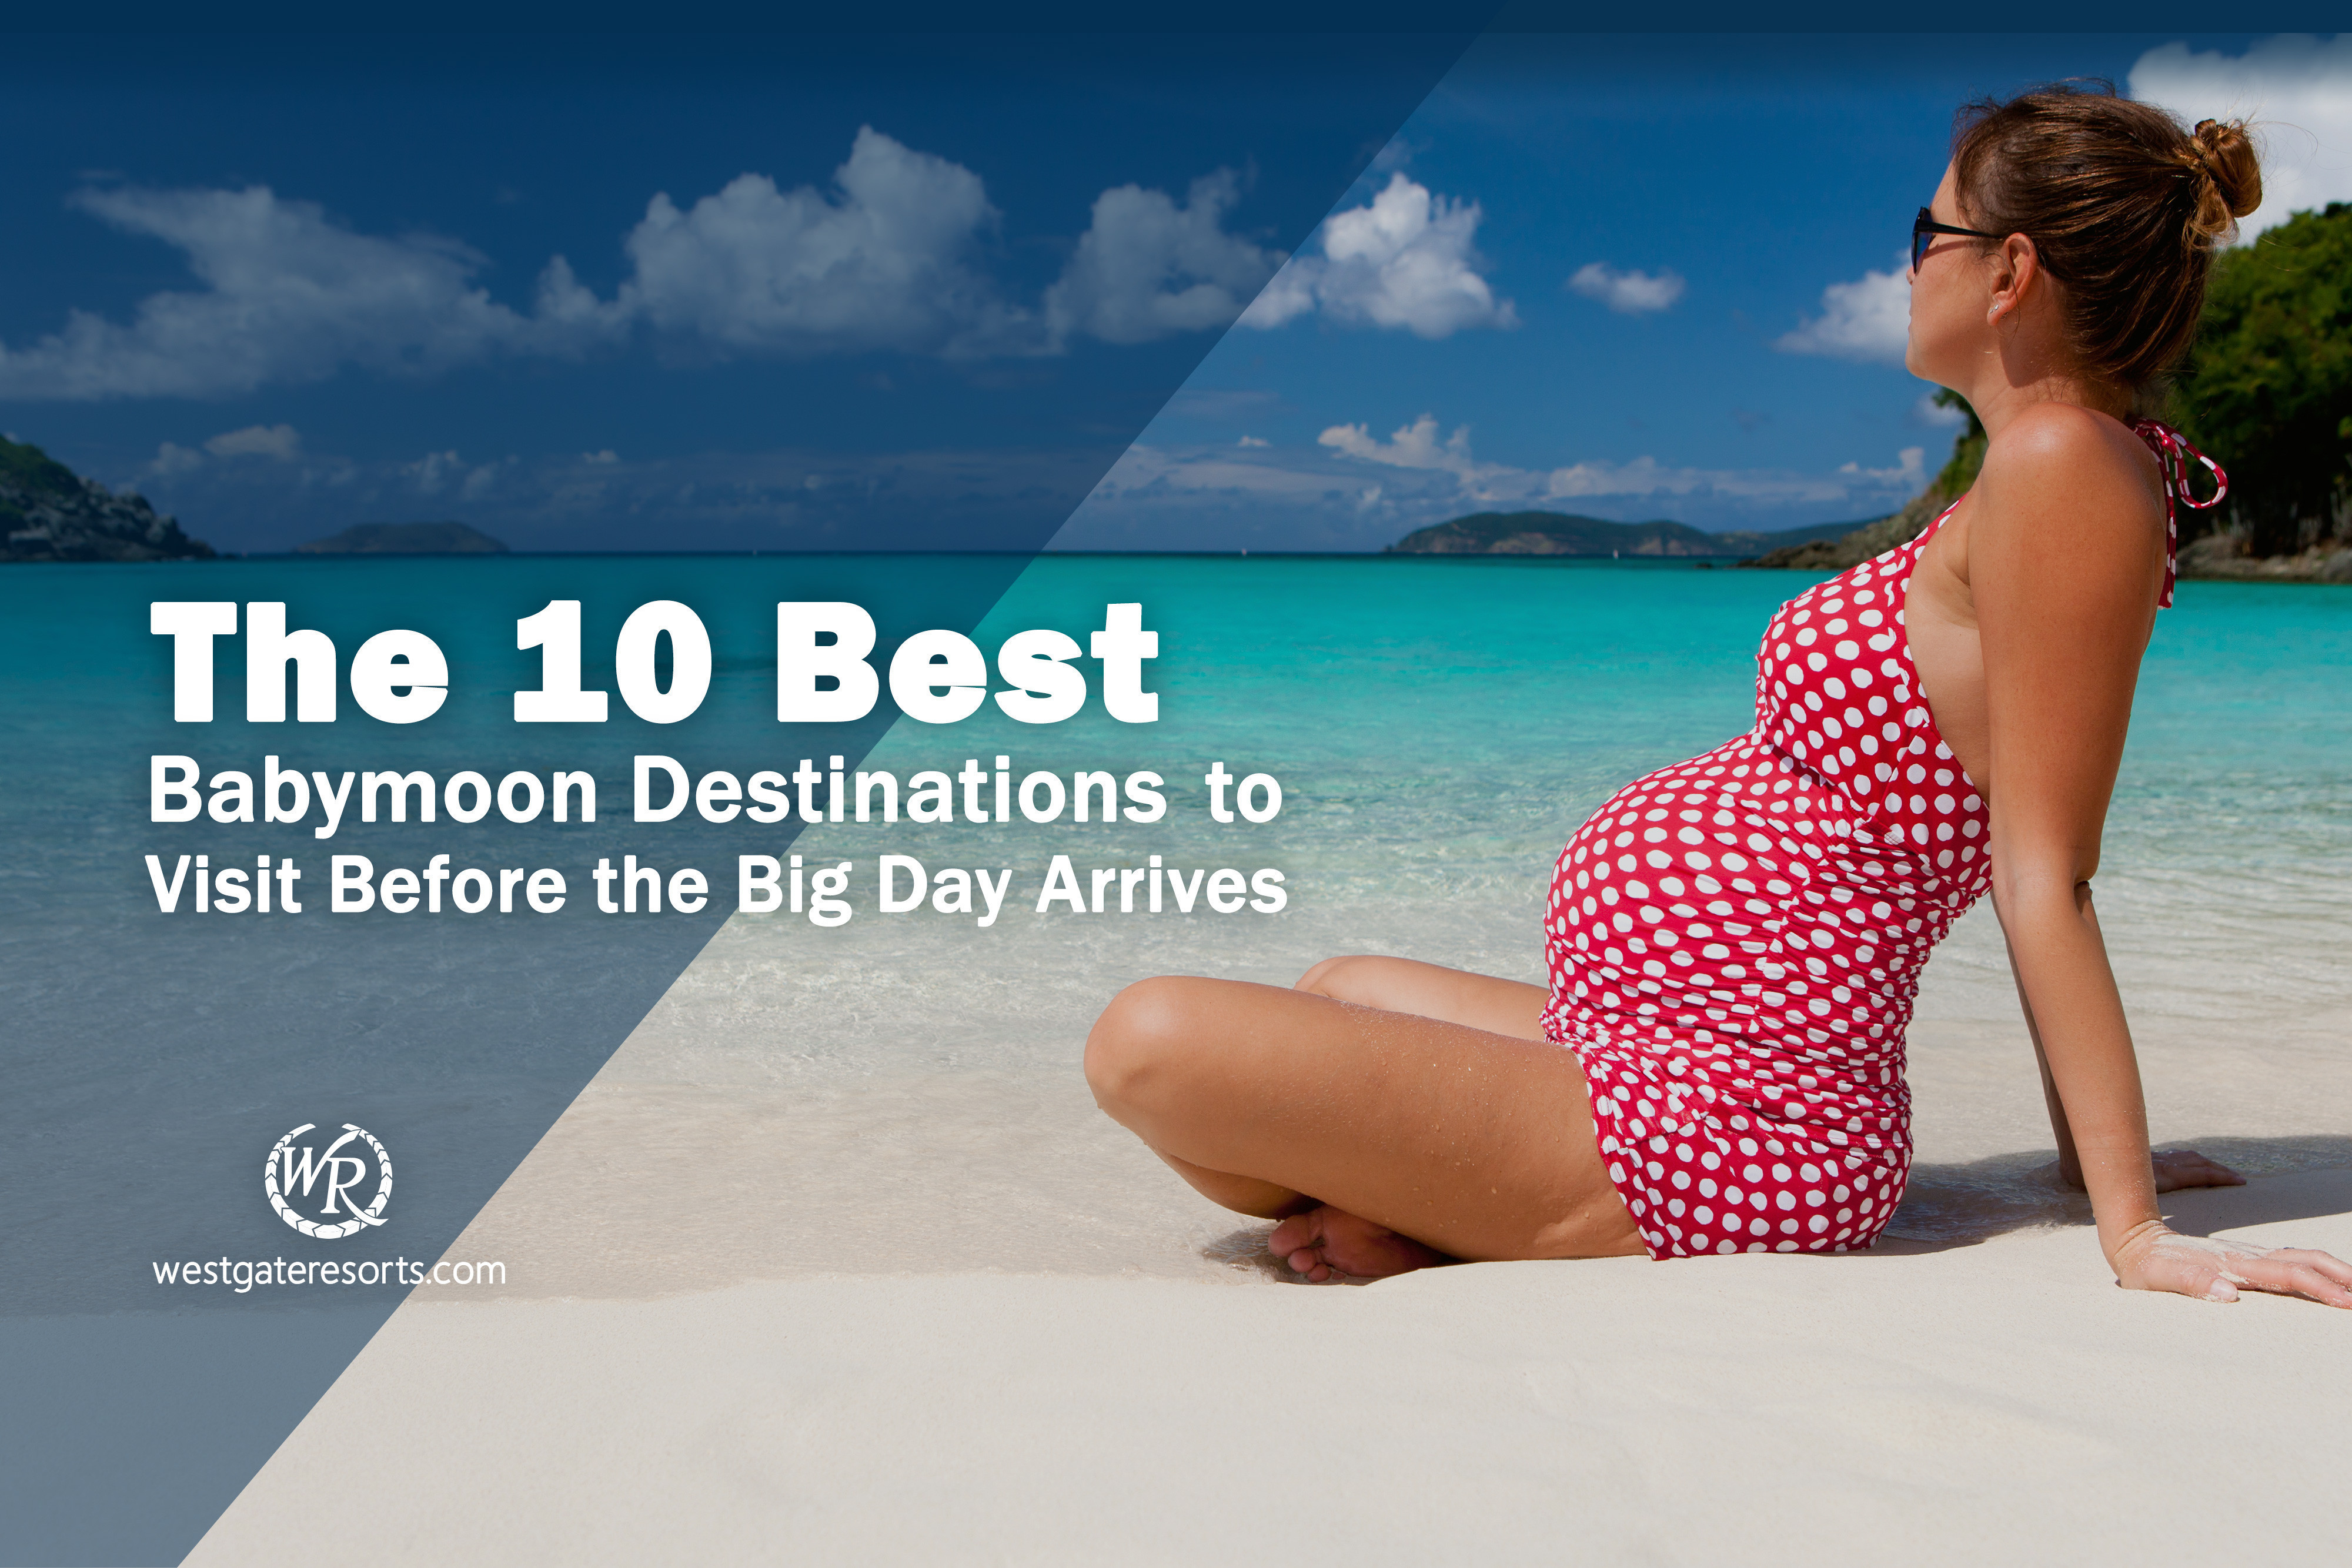 The 10 Best Babymoon Destinations to Visit Before the Big Day Arrives